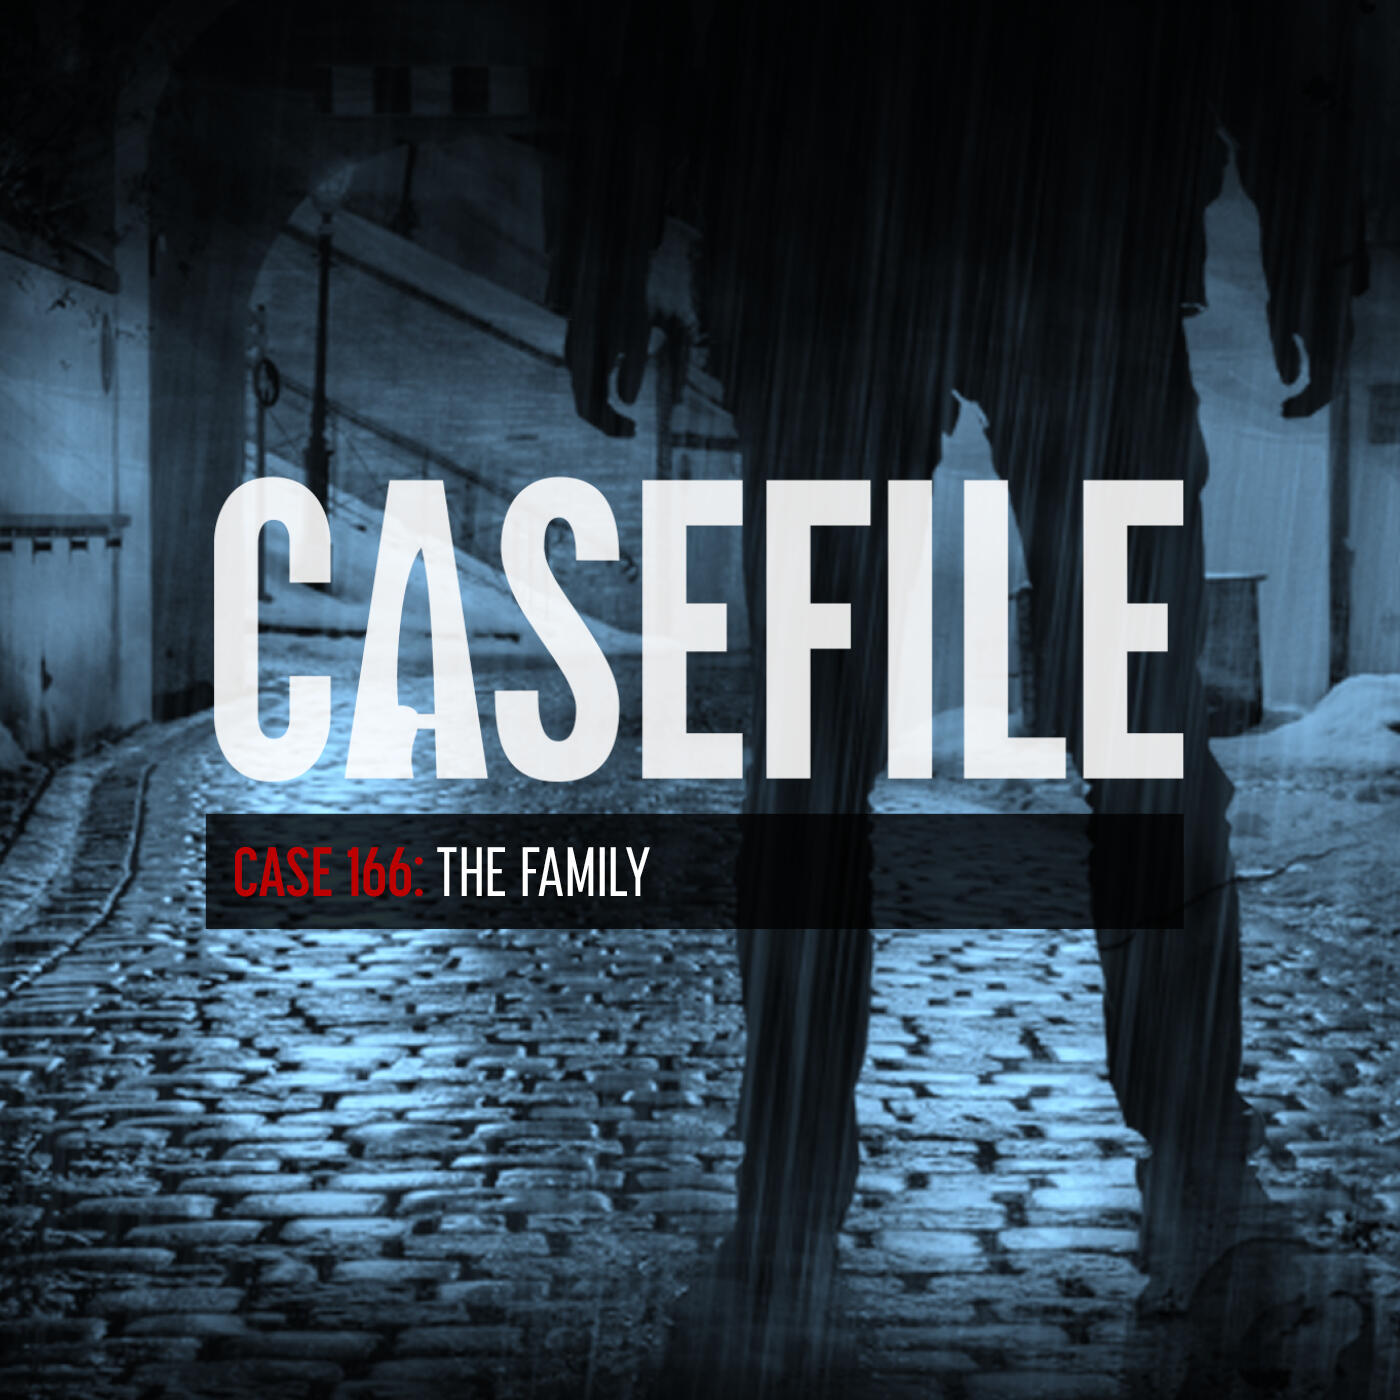 Case 166: The Family